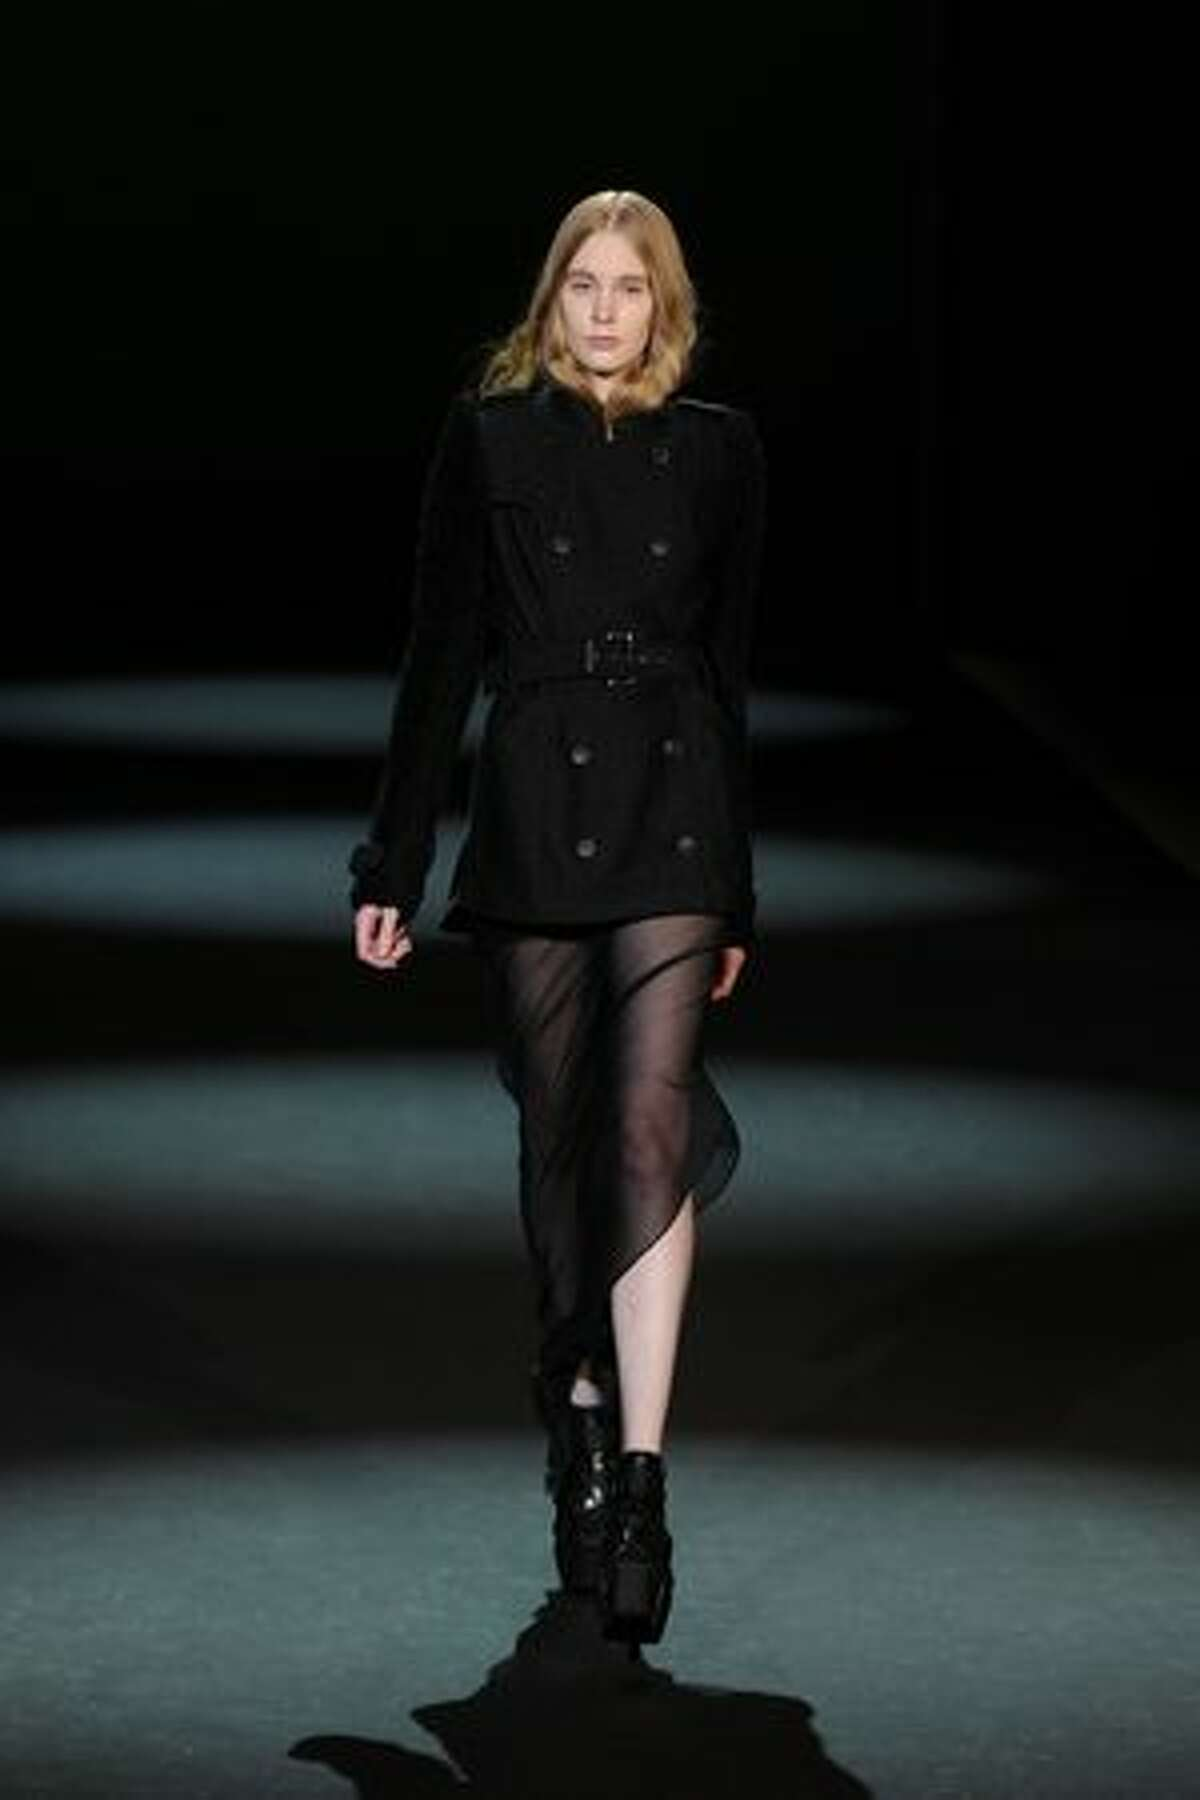 A model walks the runway at the Christian Siriano Fall 2011 fashion show during the first day of Mercedes-Benz Fashion Week Fall 2011 at Lincoln Center in New York on Thursday, Feb. 10, 2011. Siriano was the winner of the fourth season of the hit TV series